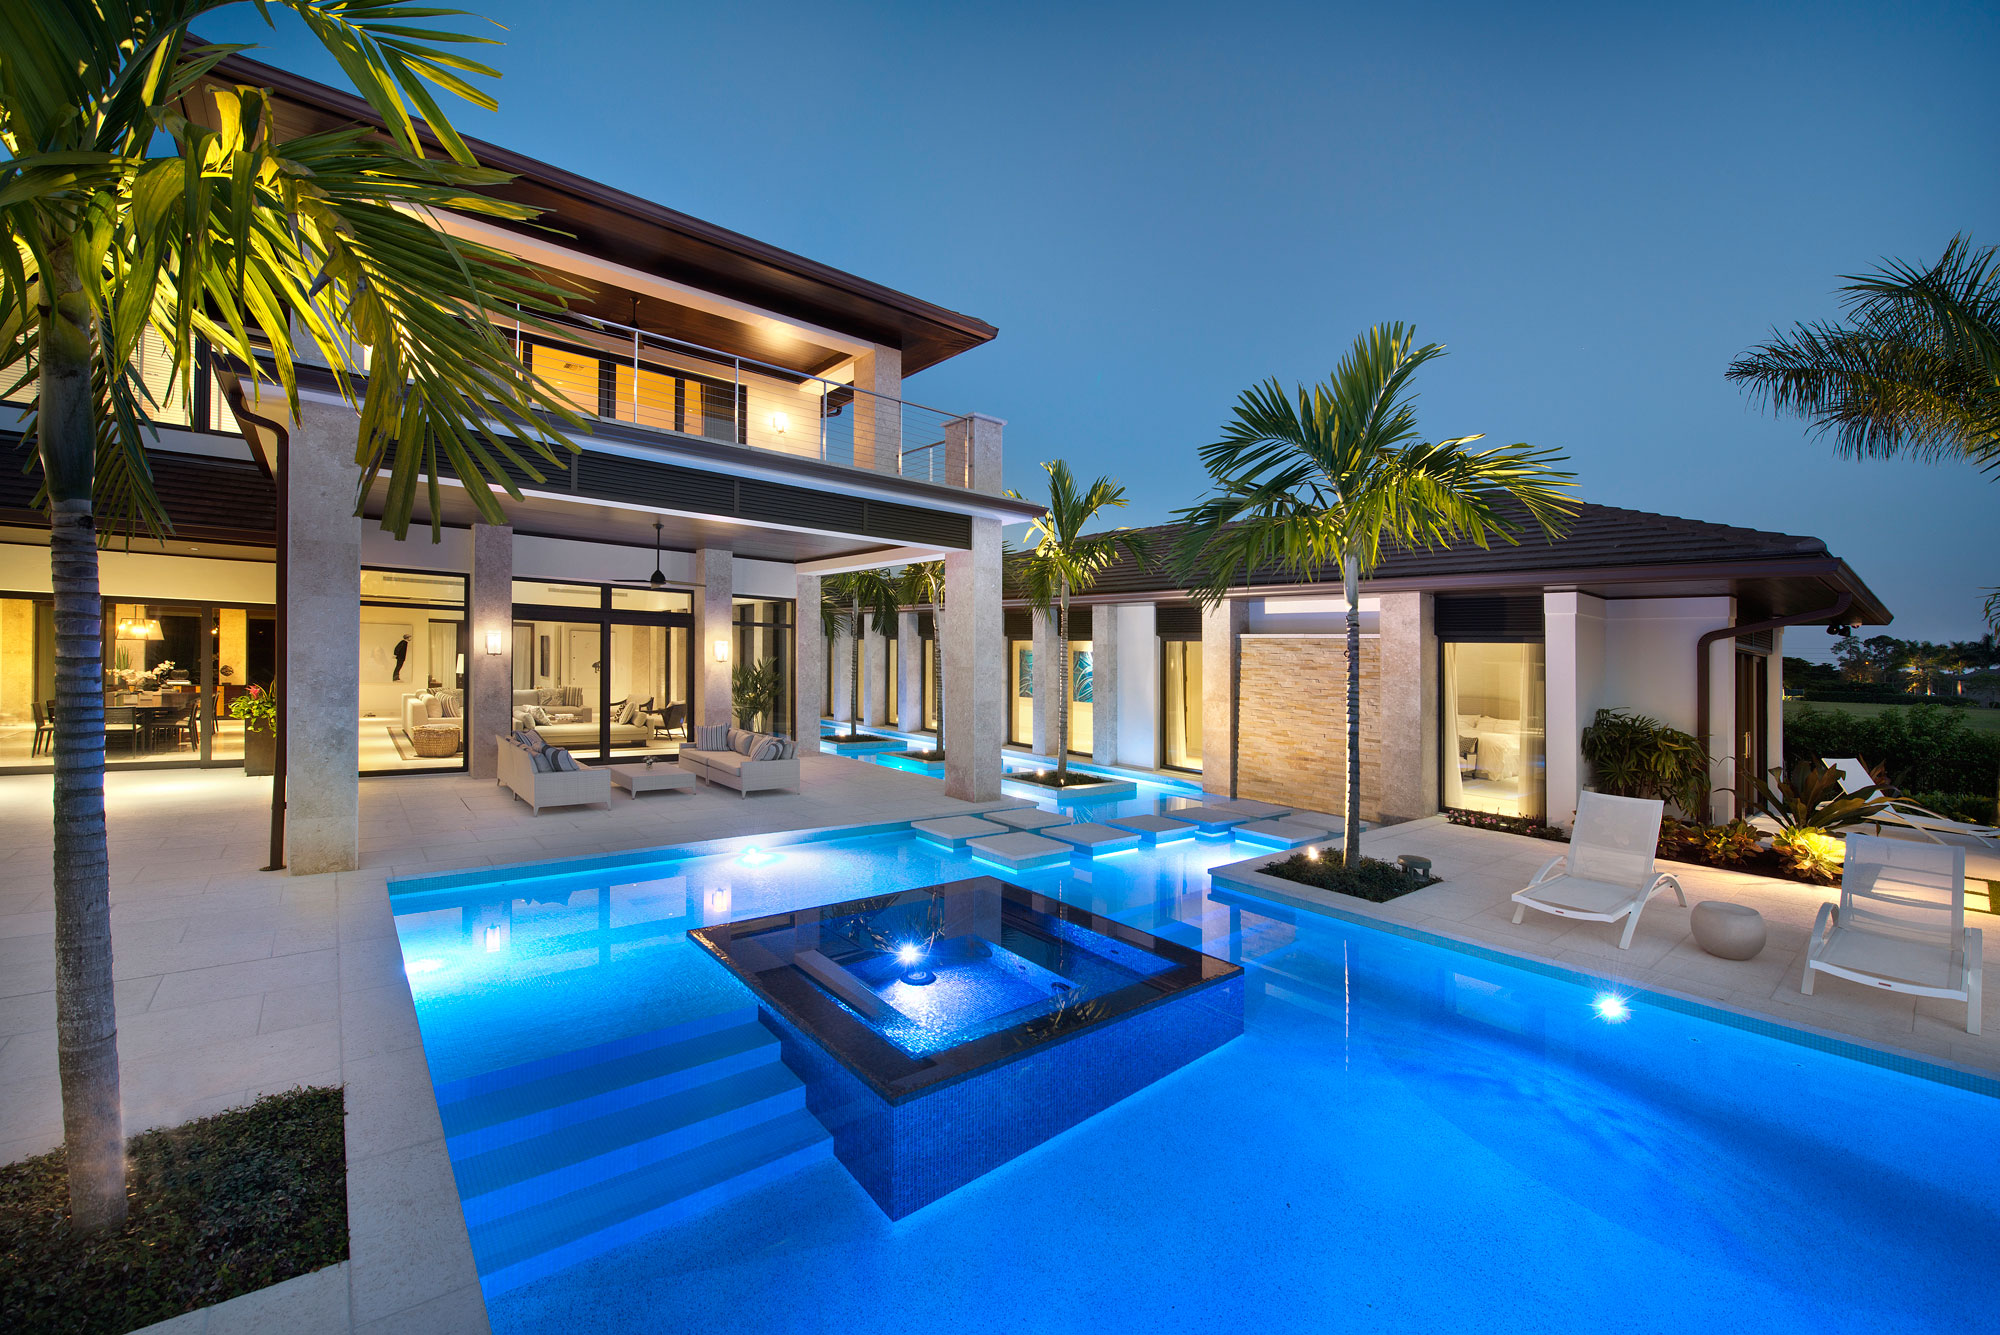 Exquisite private home in florida by harwick homes for Residence luxe